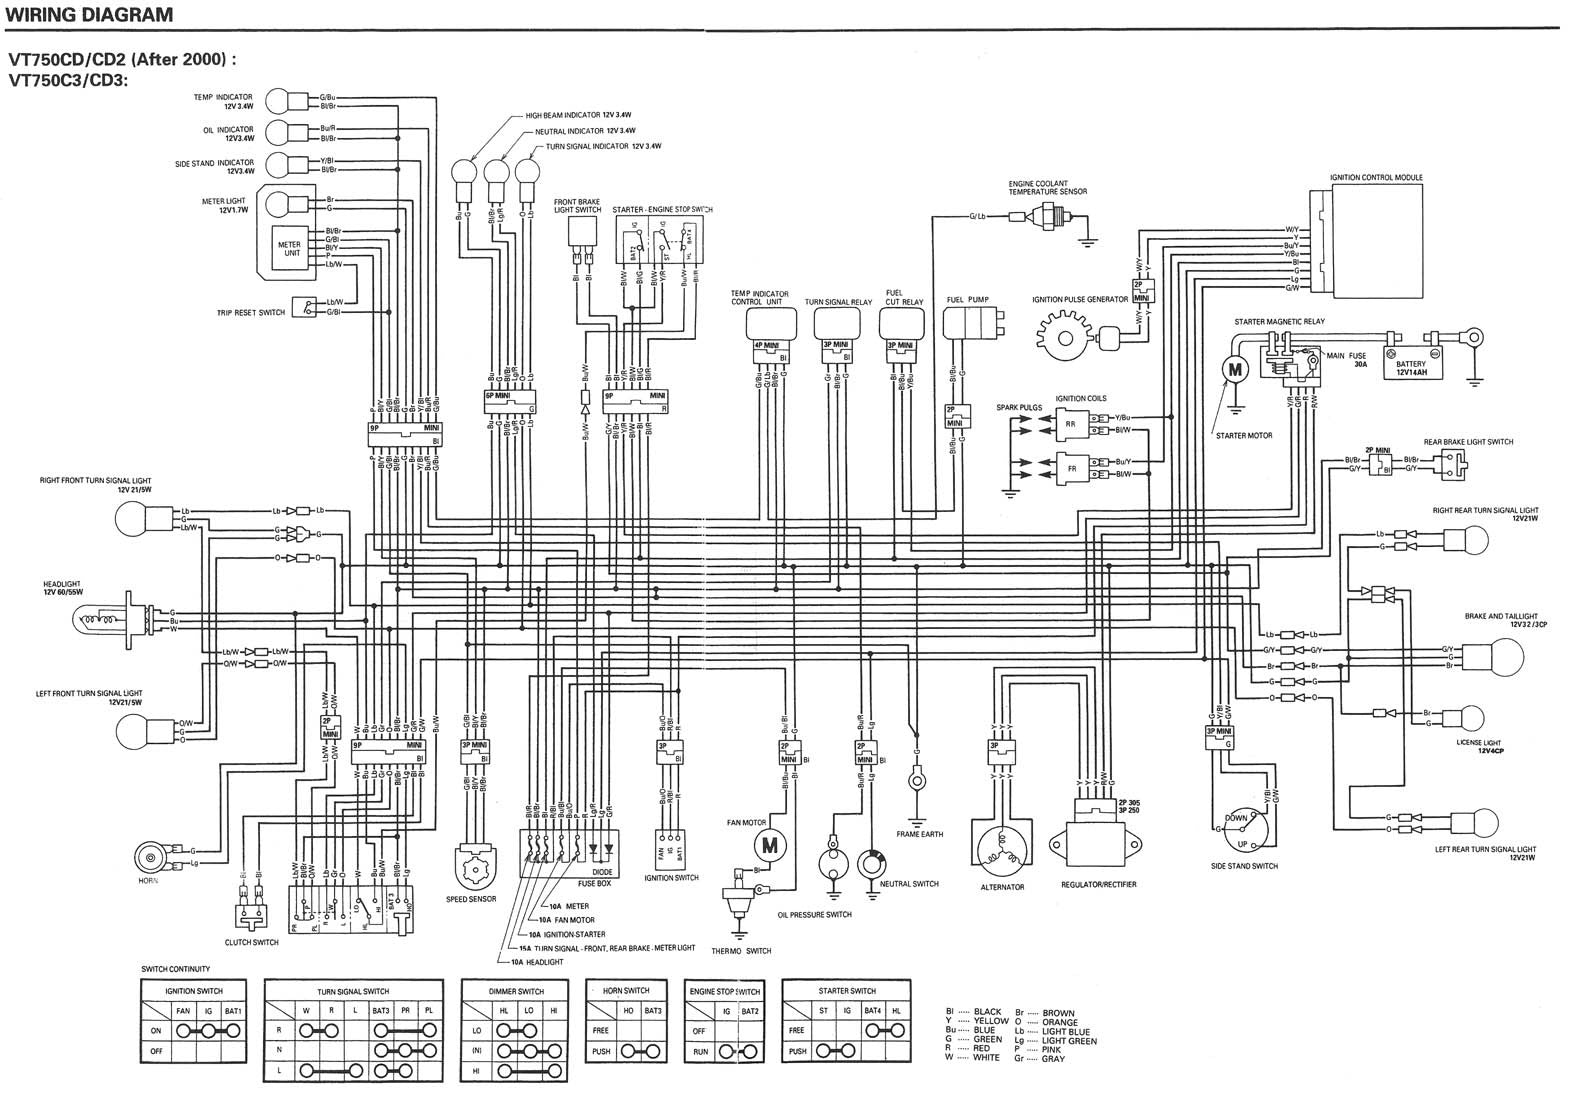 ace wiring diagram wiring diagrams lol Att Wiring Diagram honda shadow wiring diagrams tj brutal customs support residential wiring diagrams ace wiring diagram